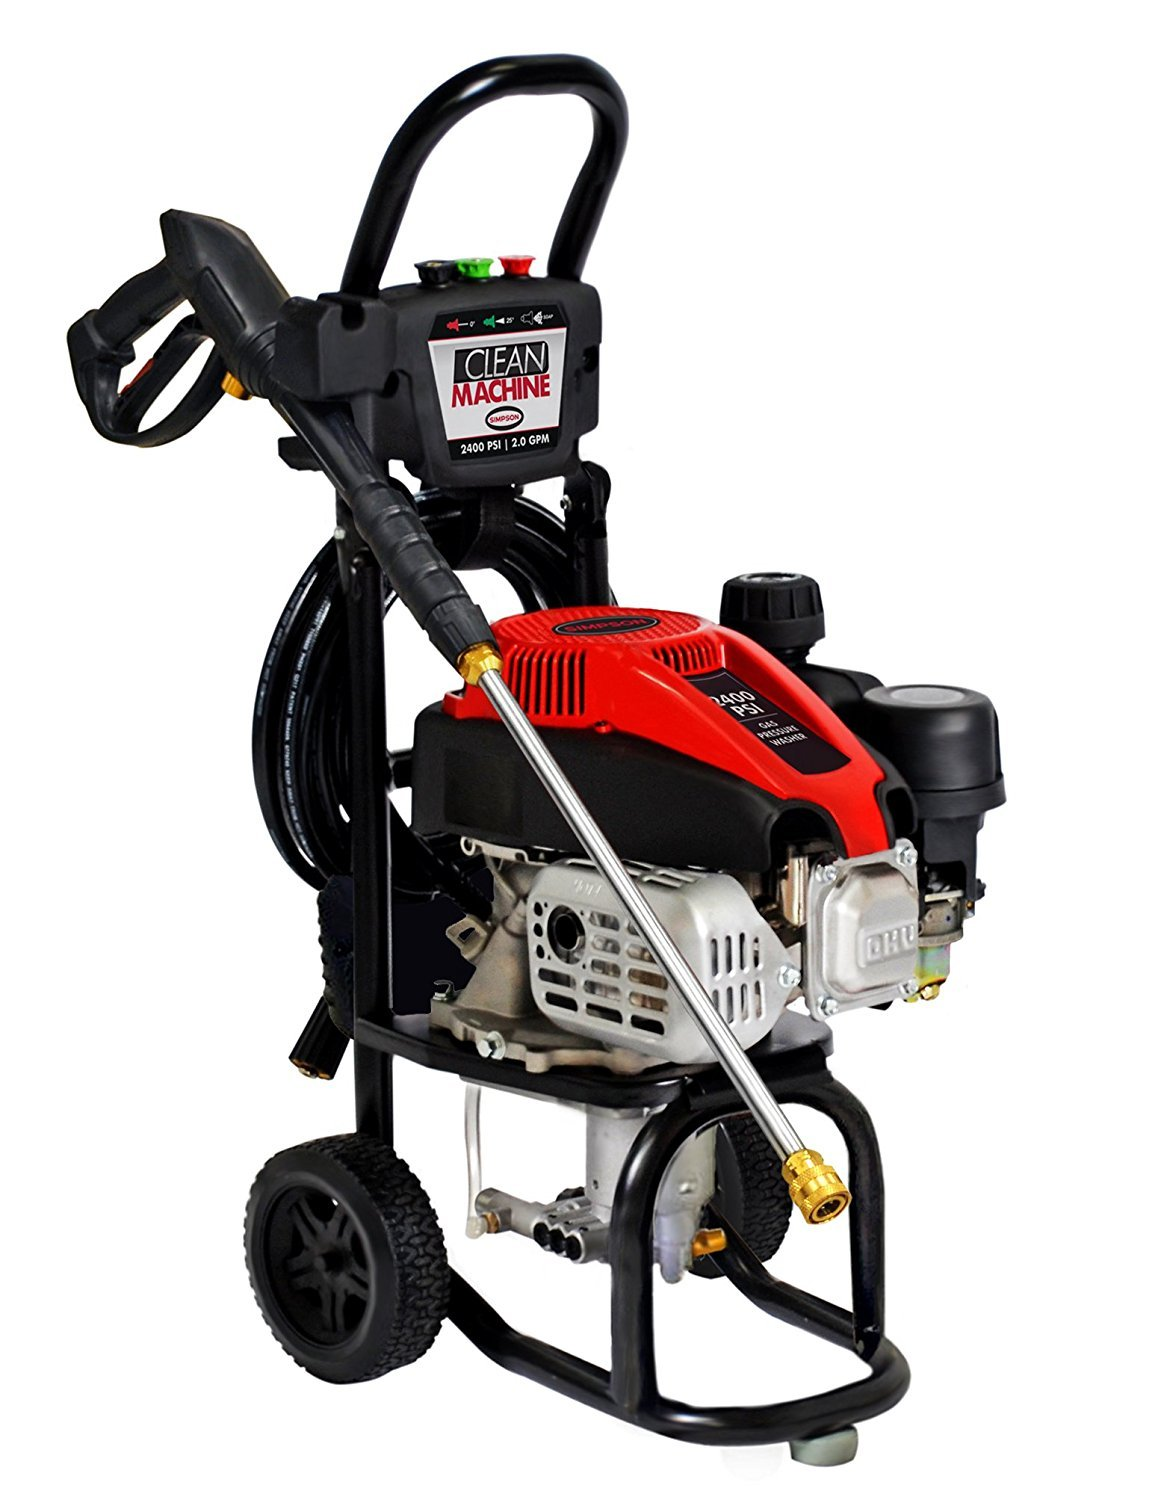 Simpson 2400 psi Pressure Washer